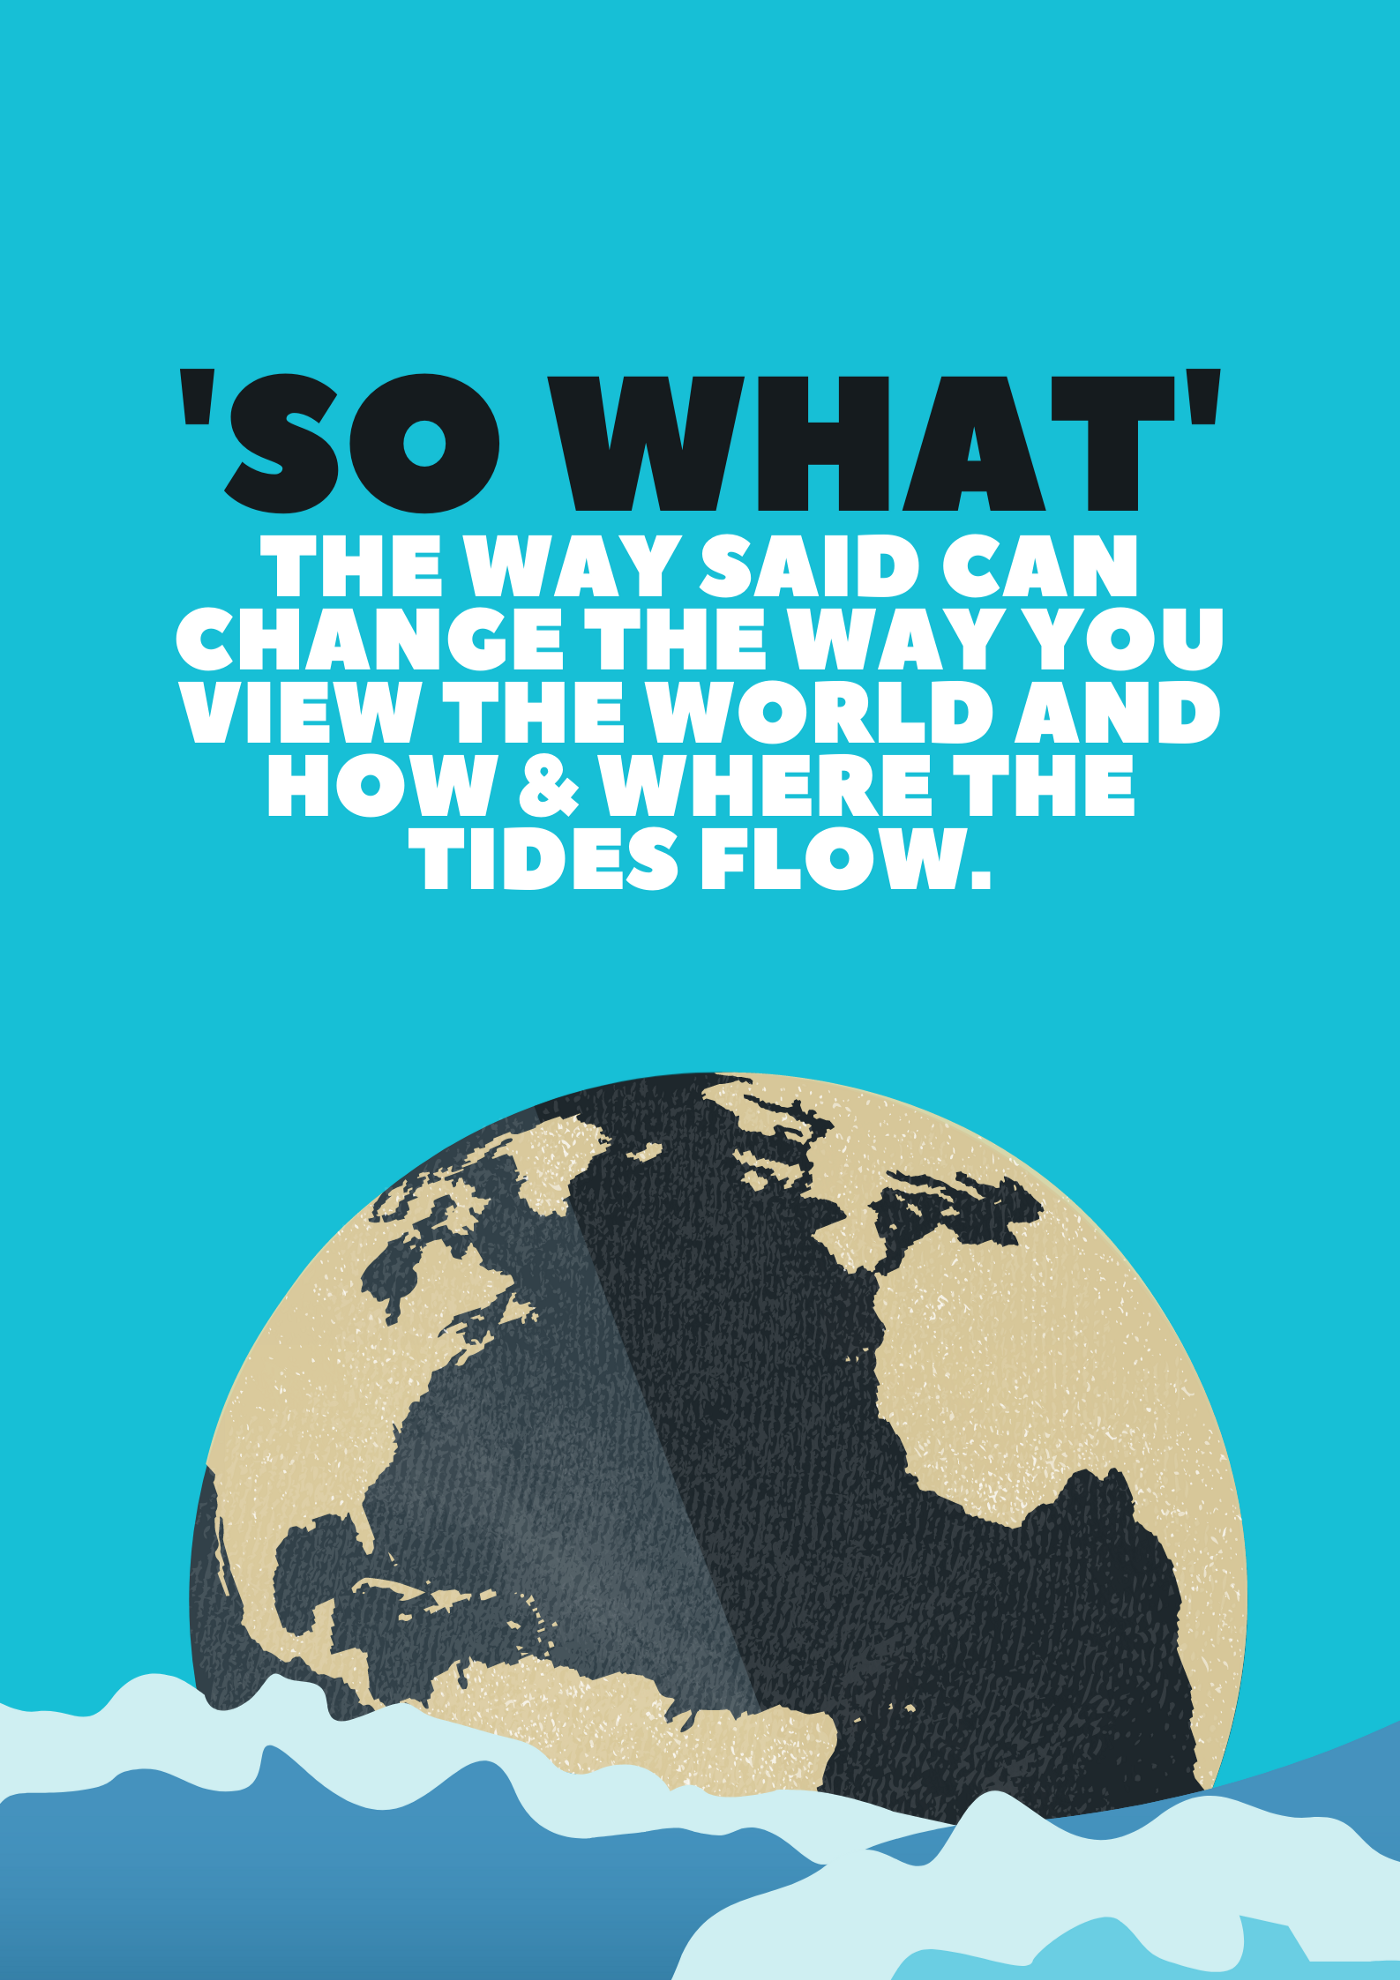 'So what' the way said can change the way you view the world and how & where the tides flow.